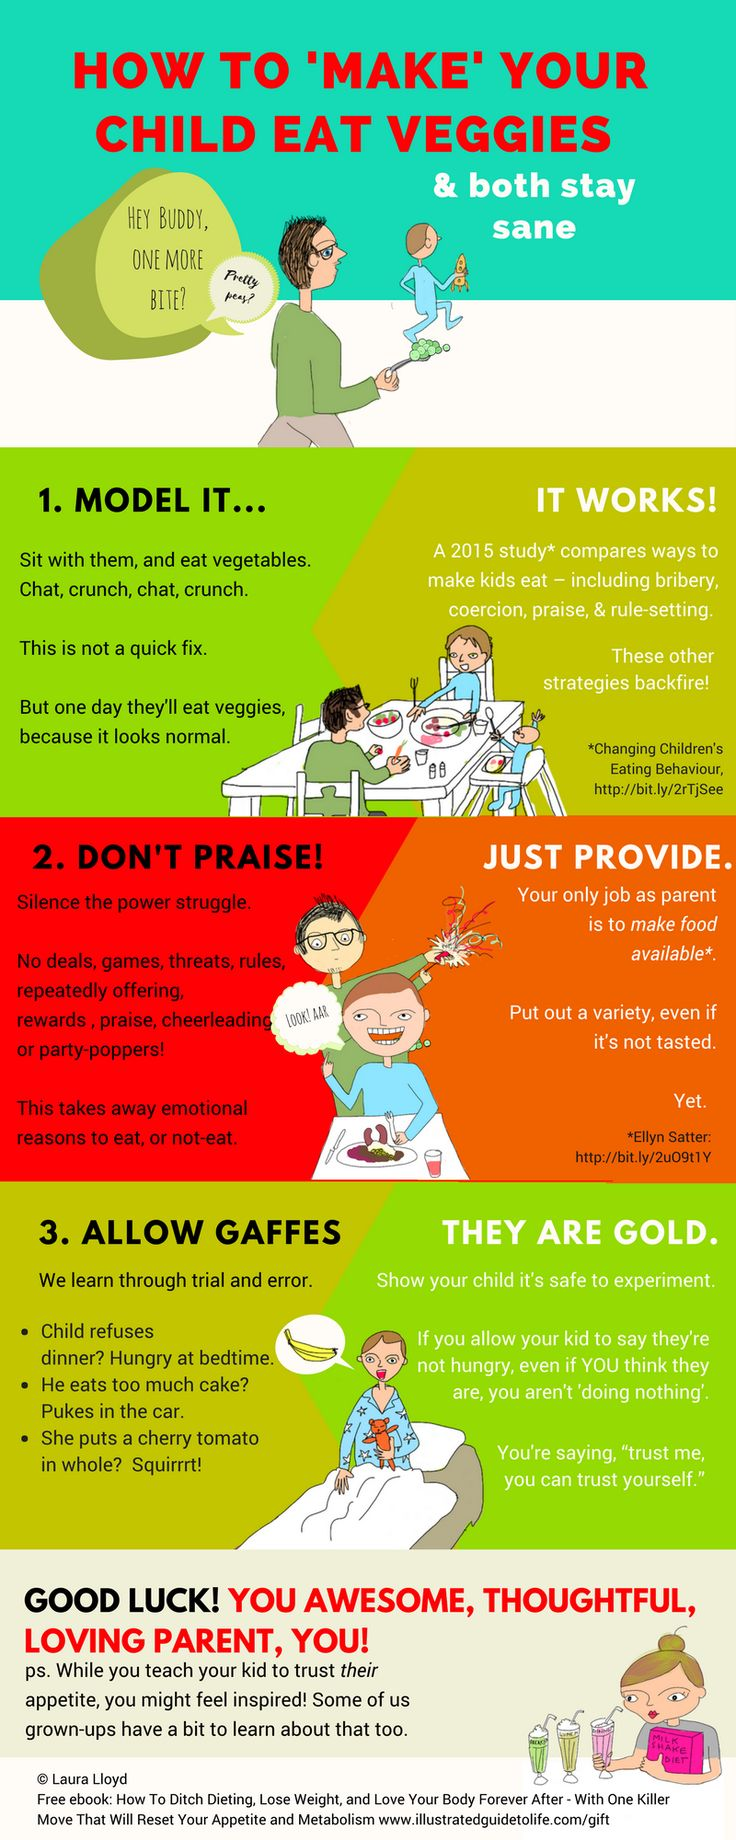 Picky eater & fussy eater advice. Eating psychology for toddler eaters. More illustrated guides at www.illustratedguidetolife.com/gift